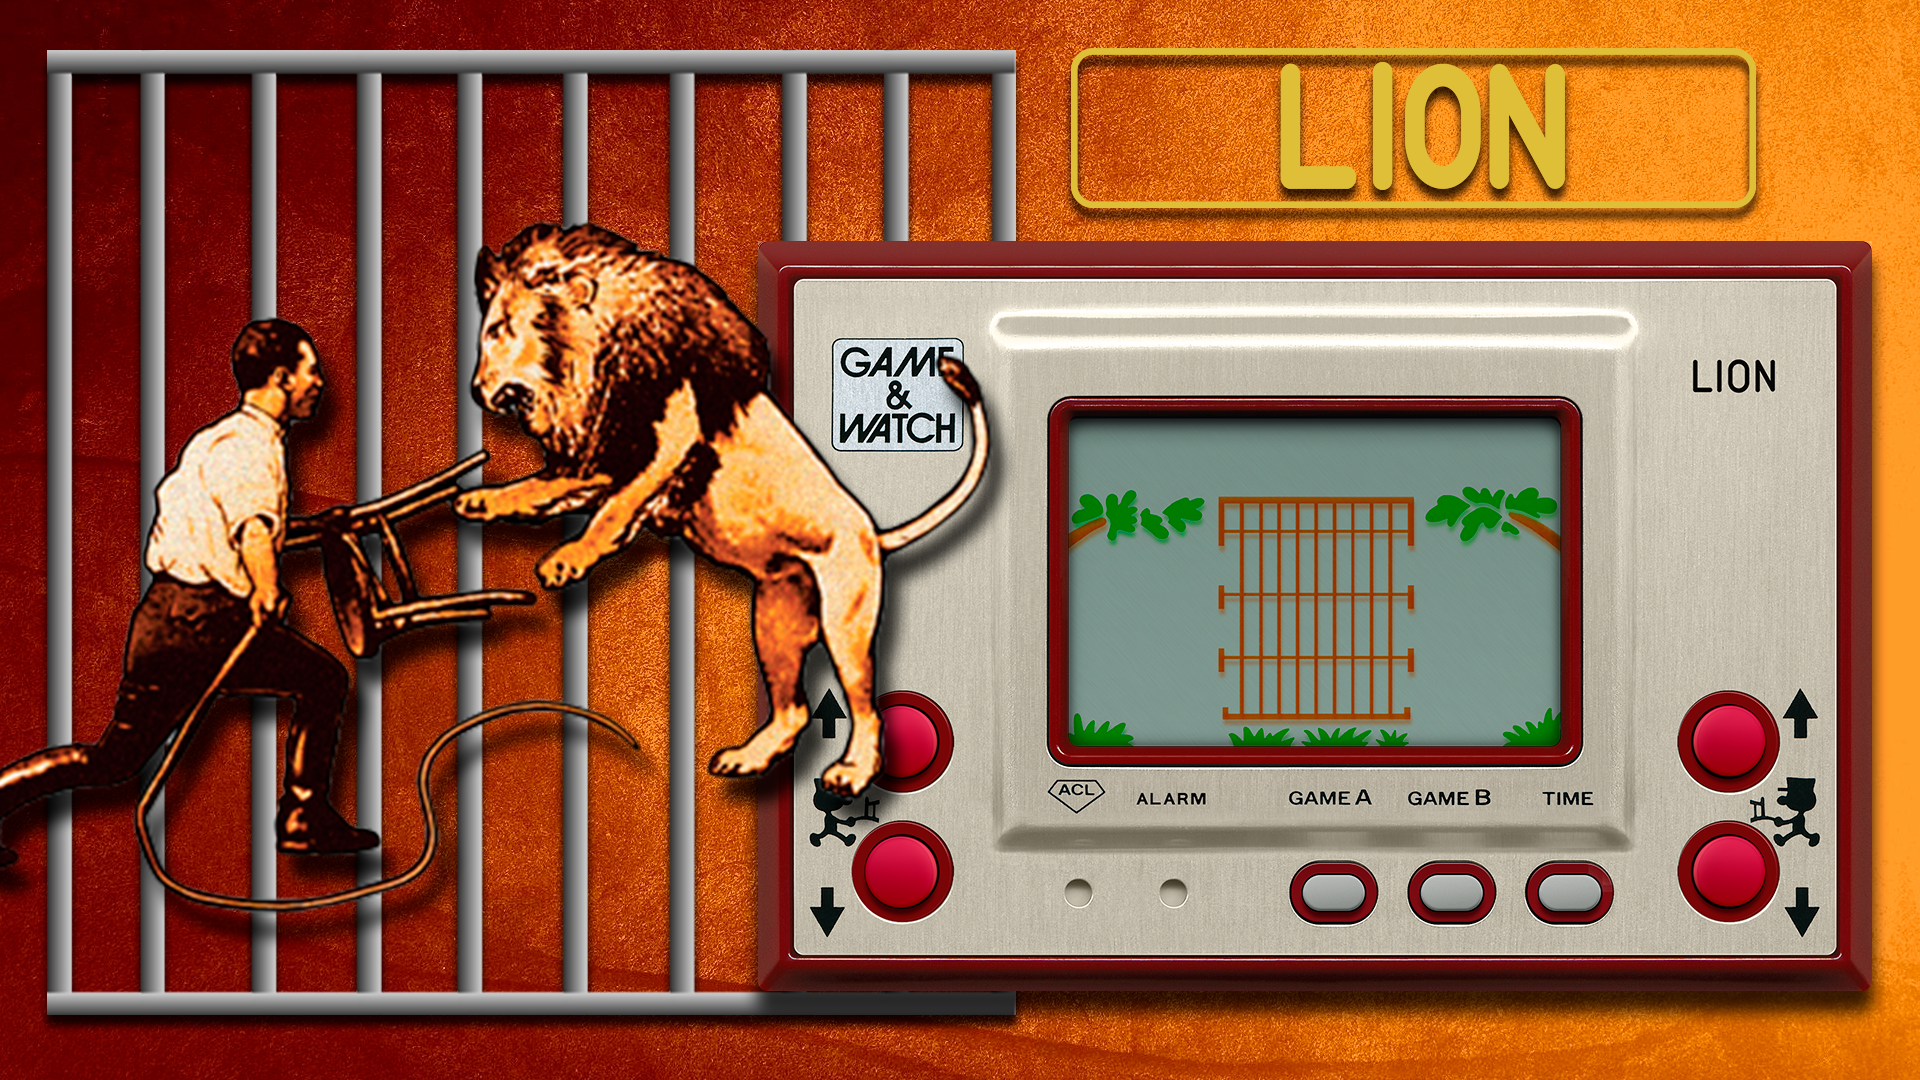 gnw_lion.png